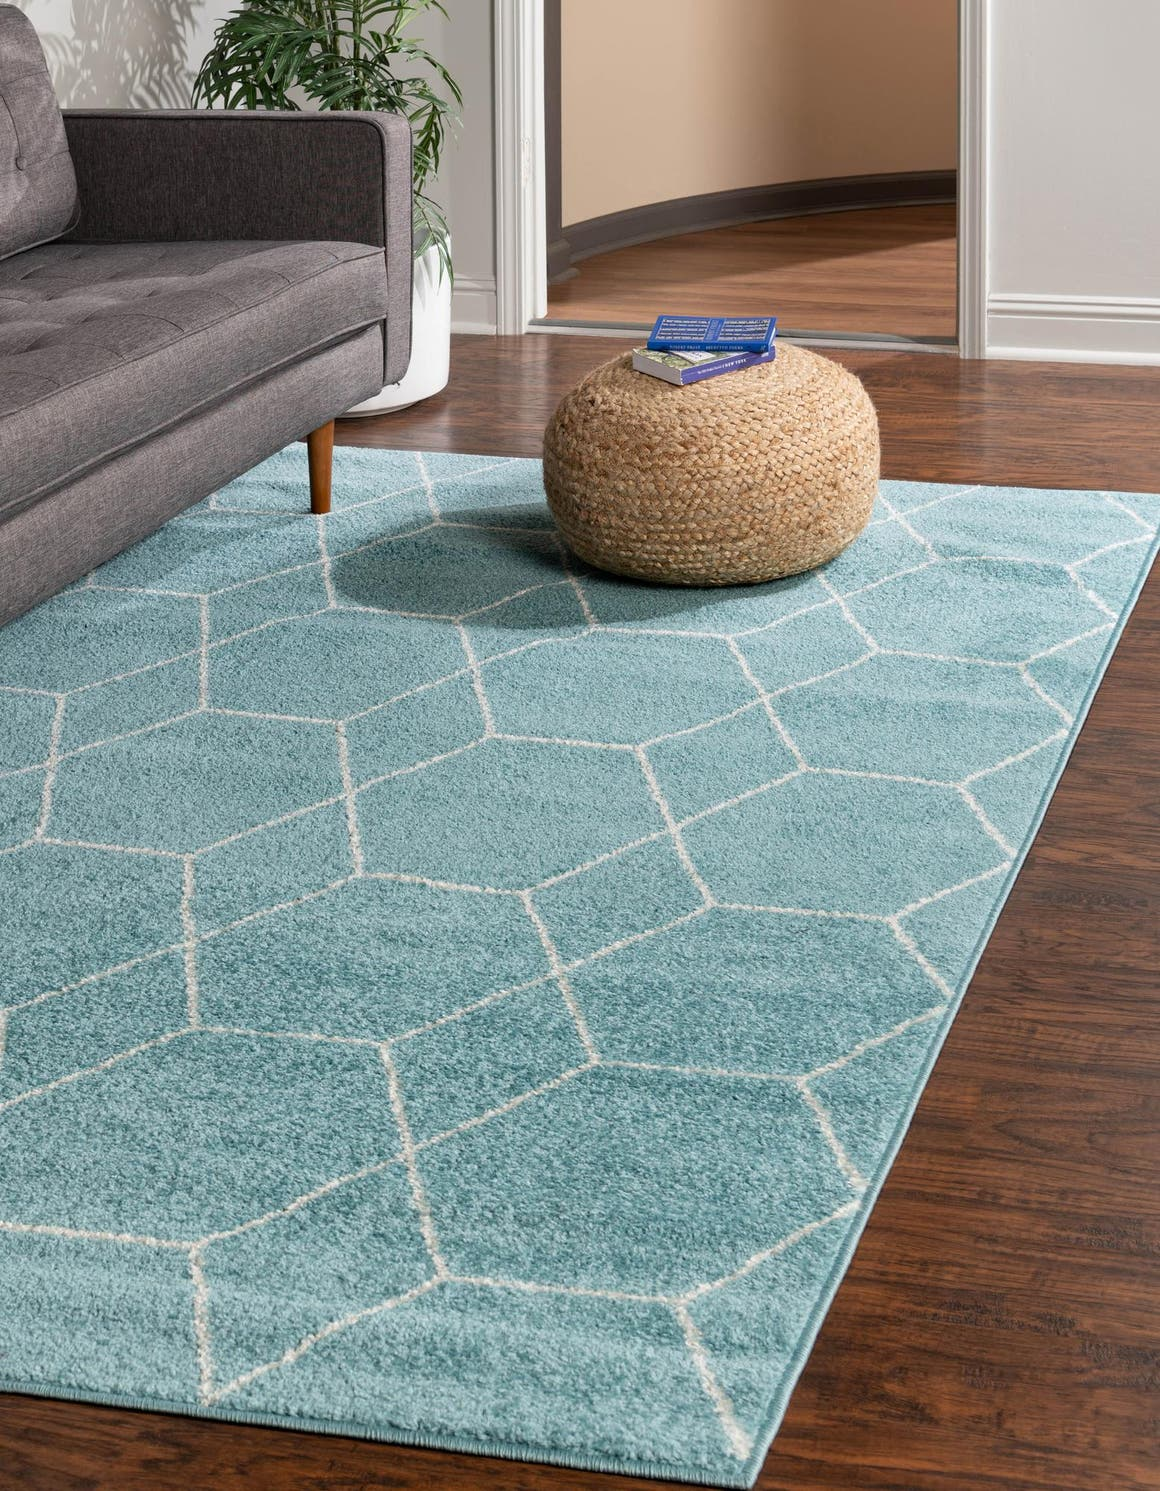 152cm x 245cm Trellis Frieze Rug main image